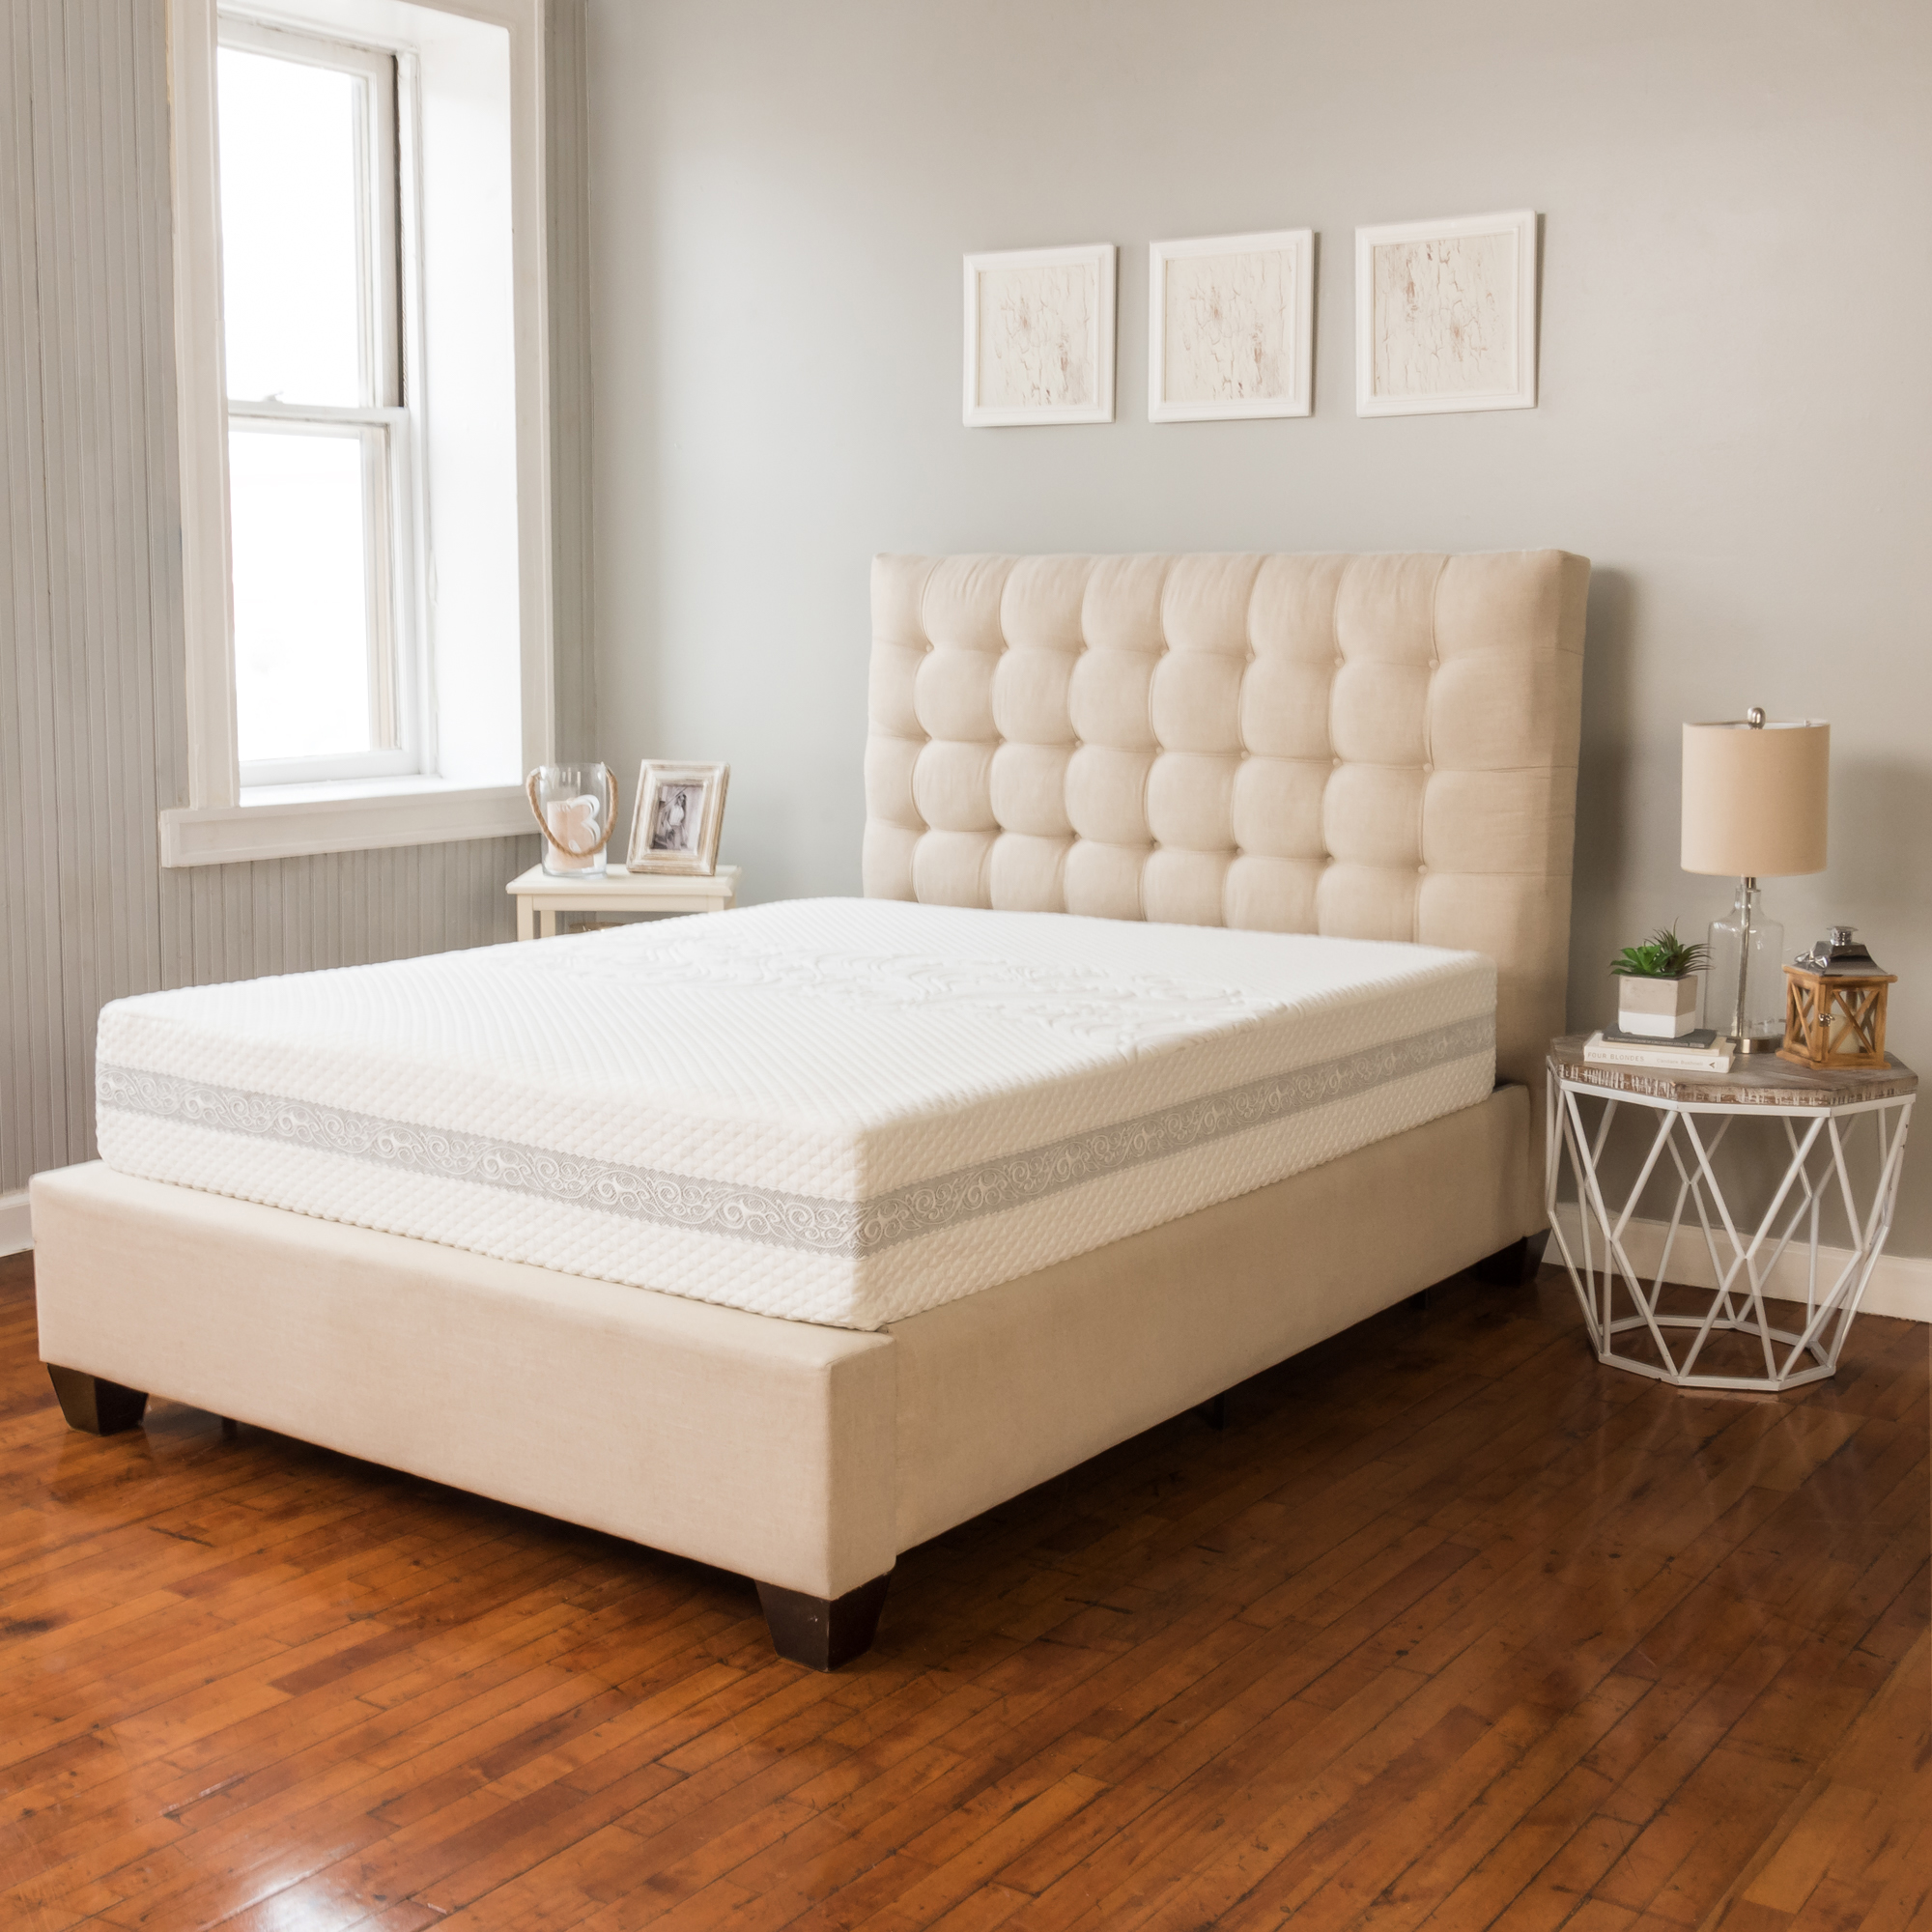 Modern Sleep Engage Gel Memory Foam and Innerspring Hybrid 11-Inch Mattress, Multiple Sizes